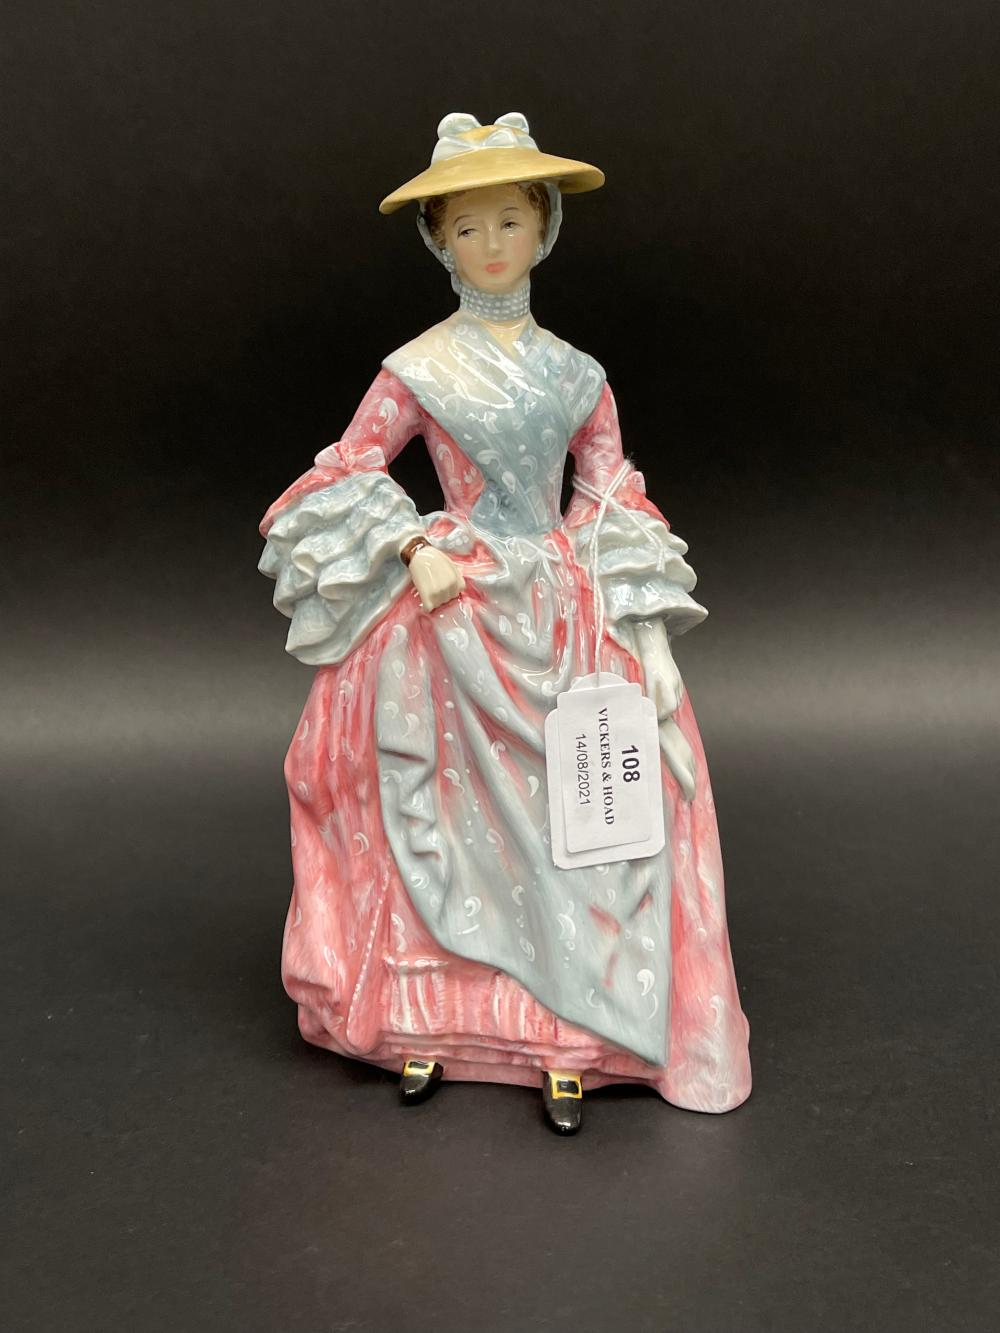 Royal Doulton Mary Countess Howe, HN3007, 640/5000, with certificate and box, approx 24cm H